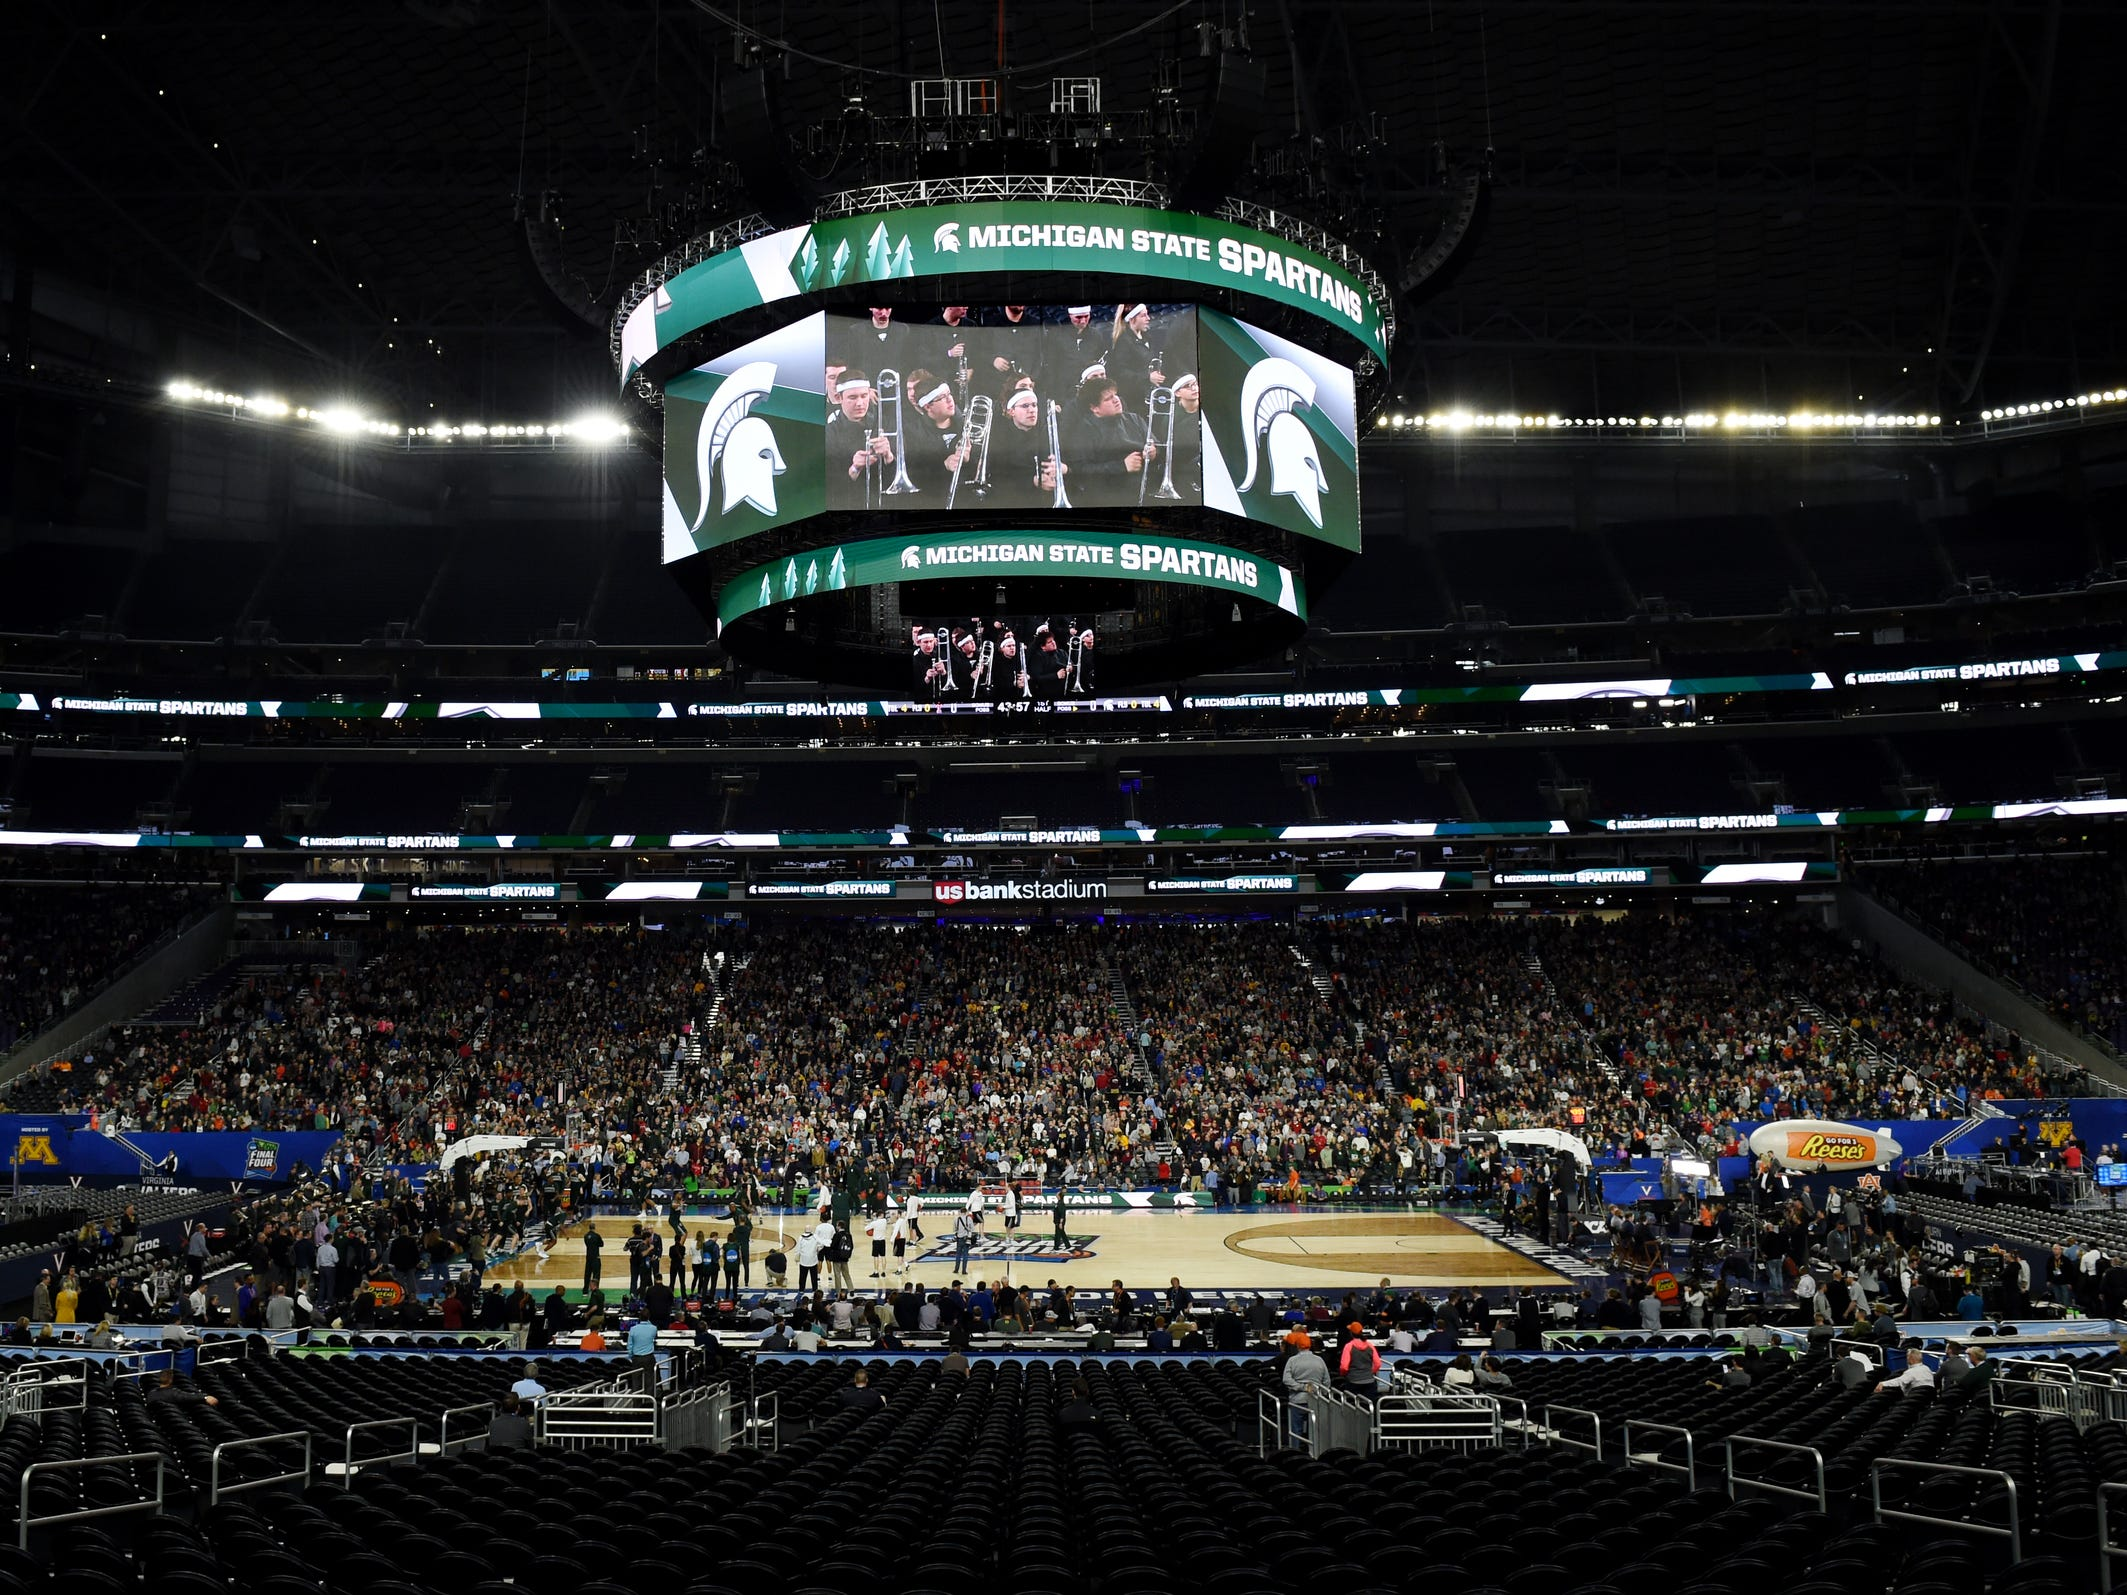 Fans watch as Michigan State holds an open practice at U.S. Bank Stadium during the Final Four in Minneapolis on Friday, April 5, 2019.